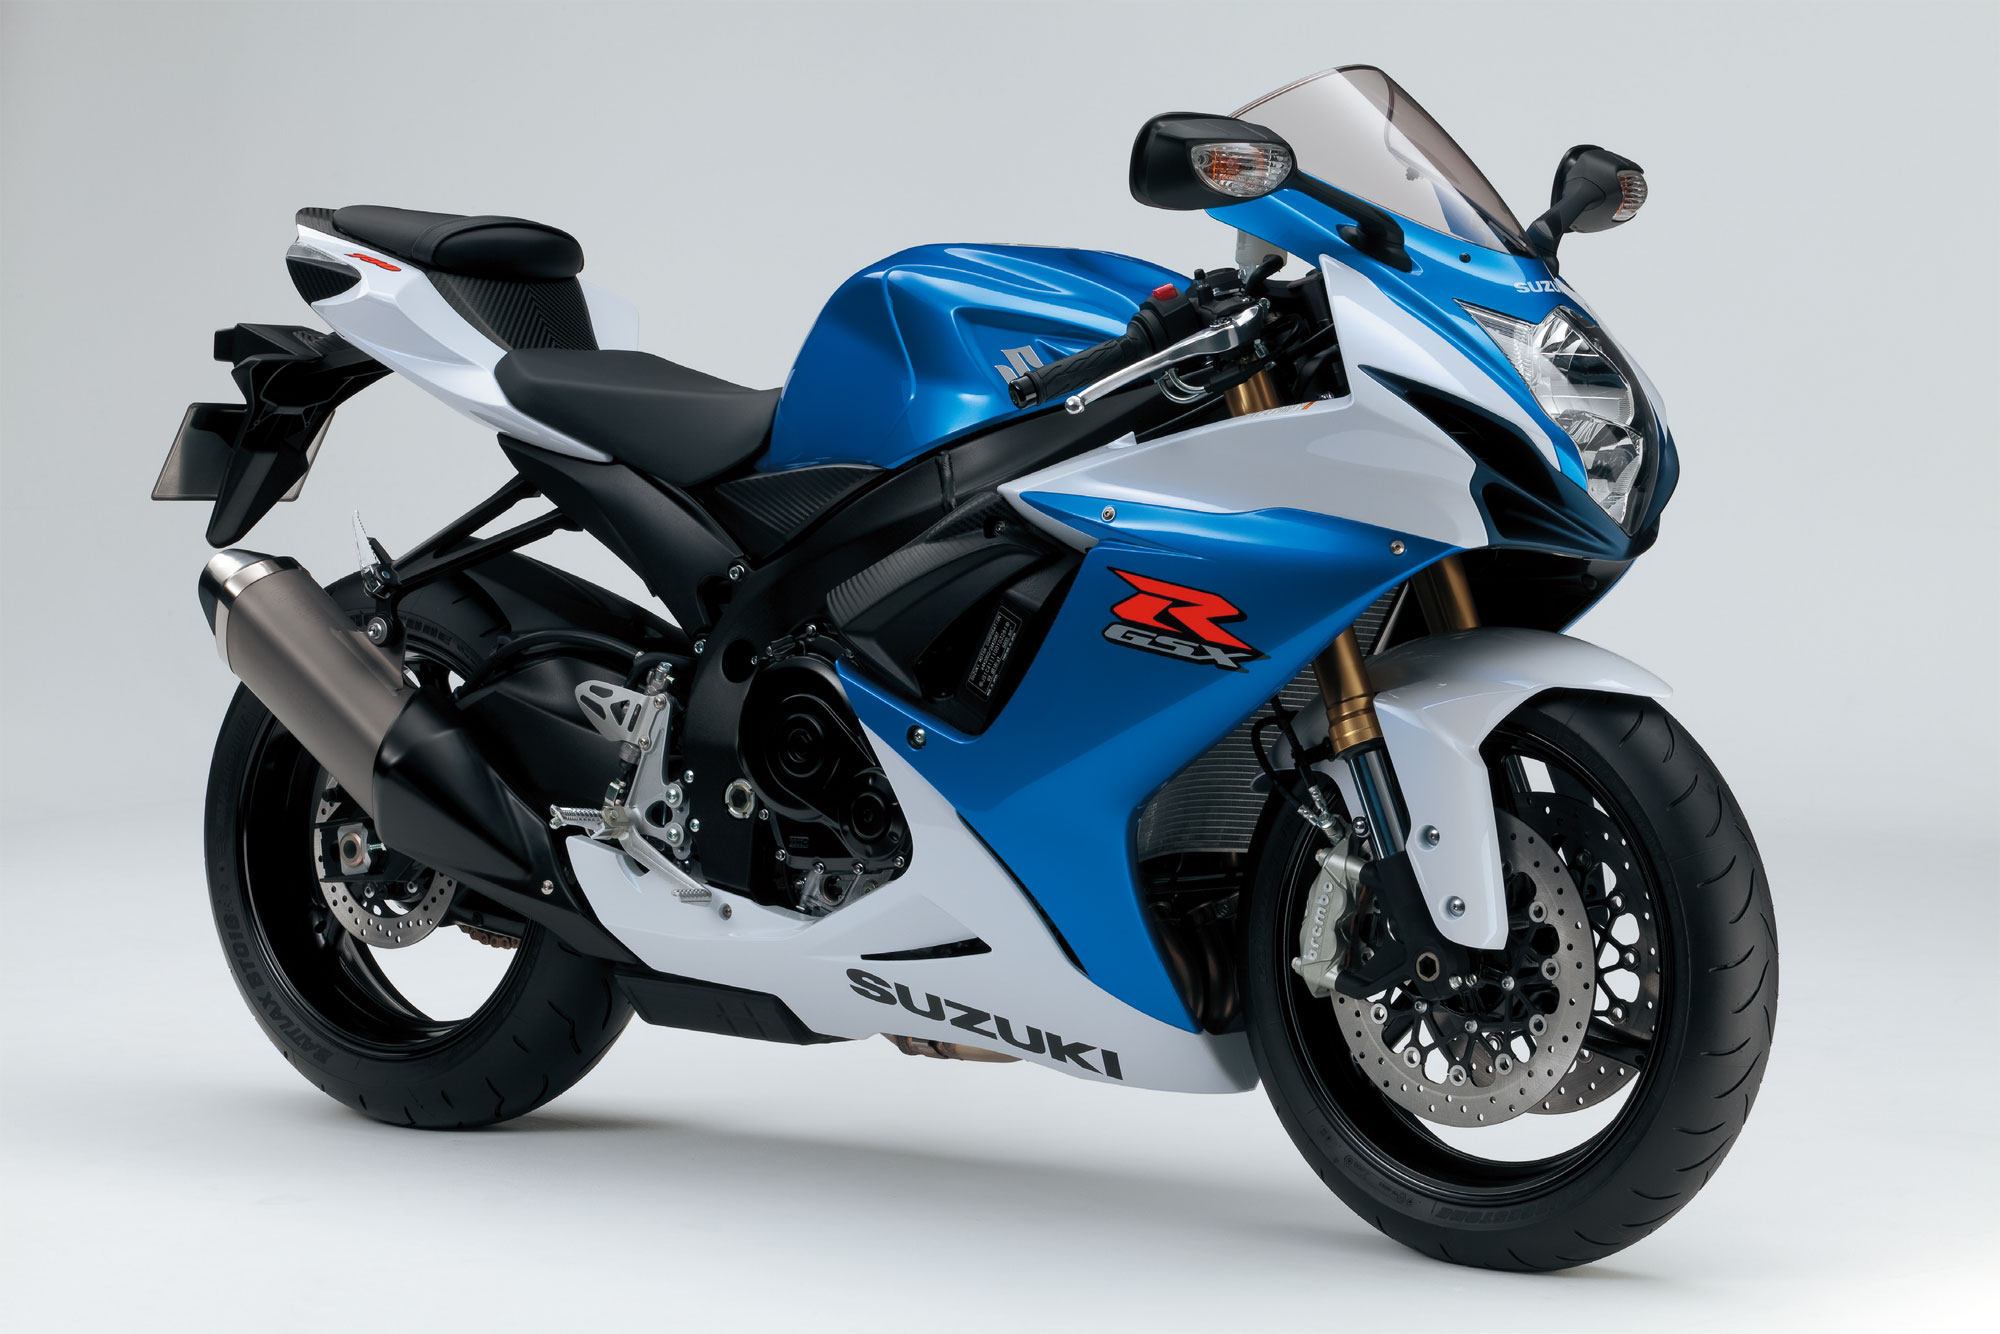 2013 suzuki gsx r 750 pics specs and information. Black Bedroom Furniture Sets. Home Design Ideas